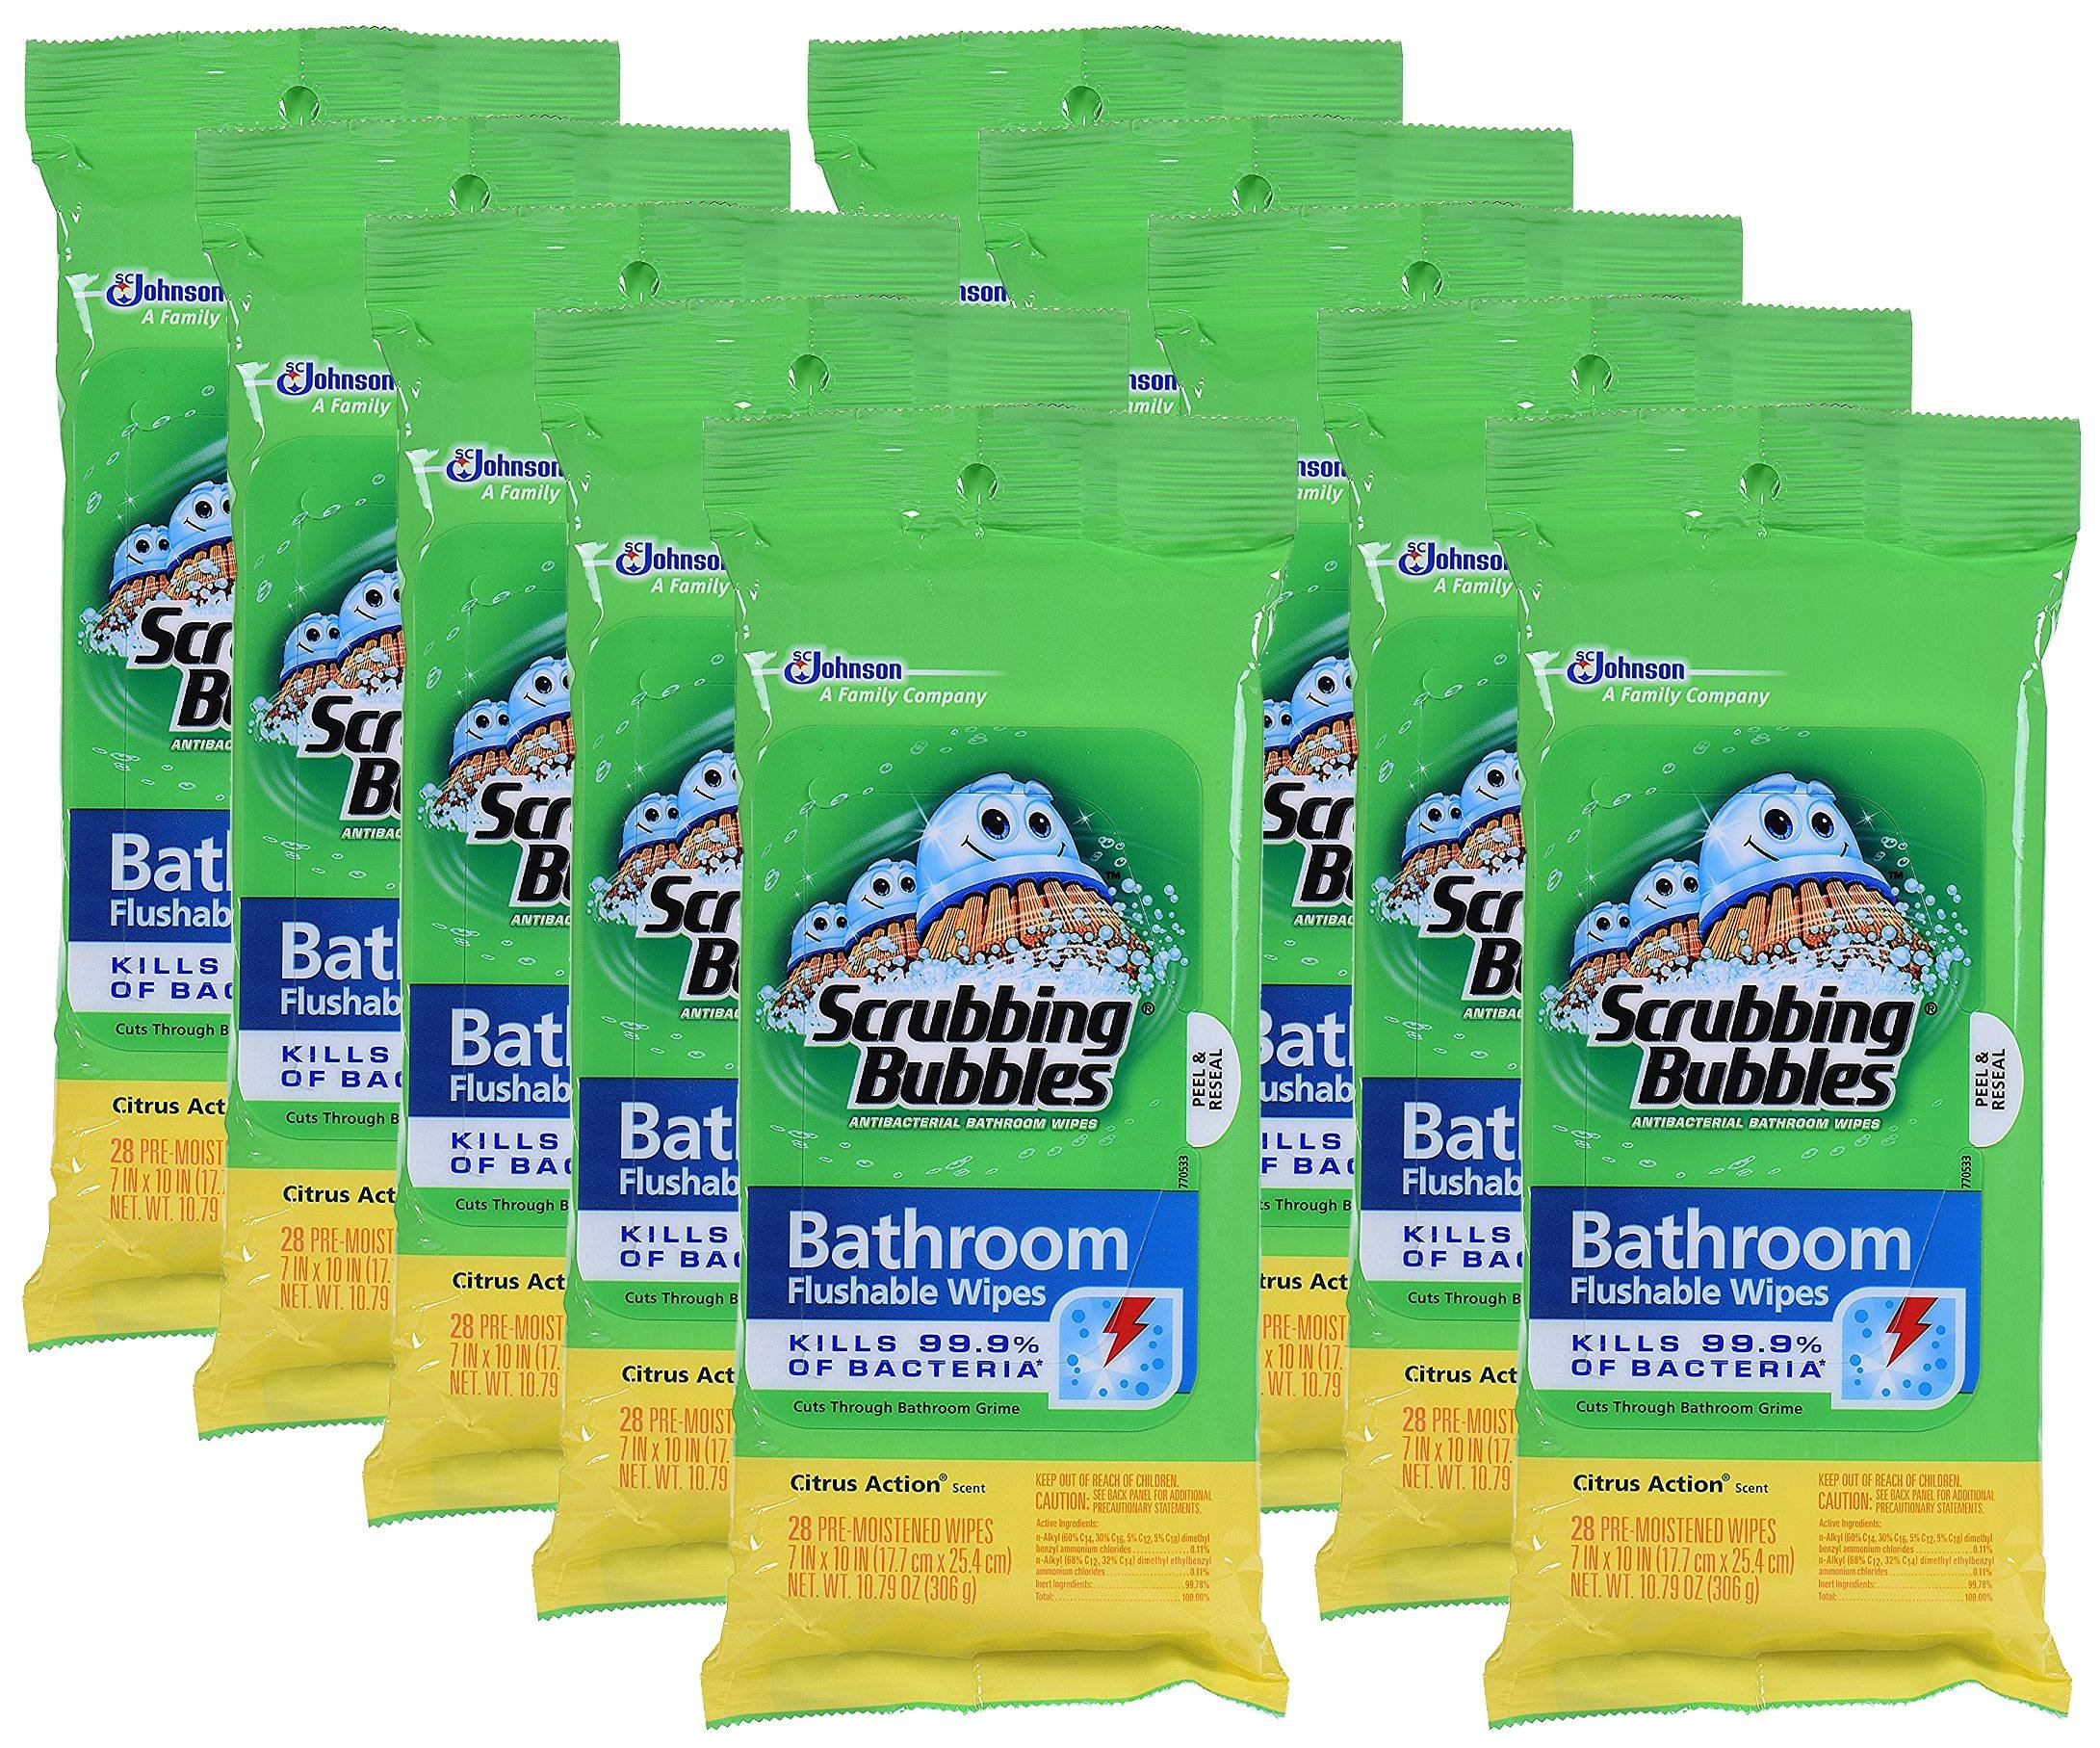 Scrubbing Bubbles Antibacterial Bathroom Flushable Wipes stRHH, 28 Count, 10Pack by Scrubbing Bubbles (Image #1)